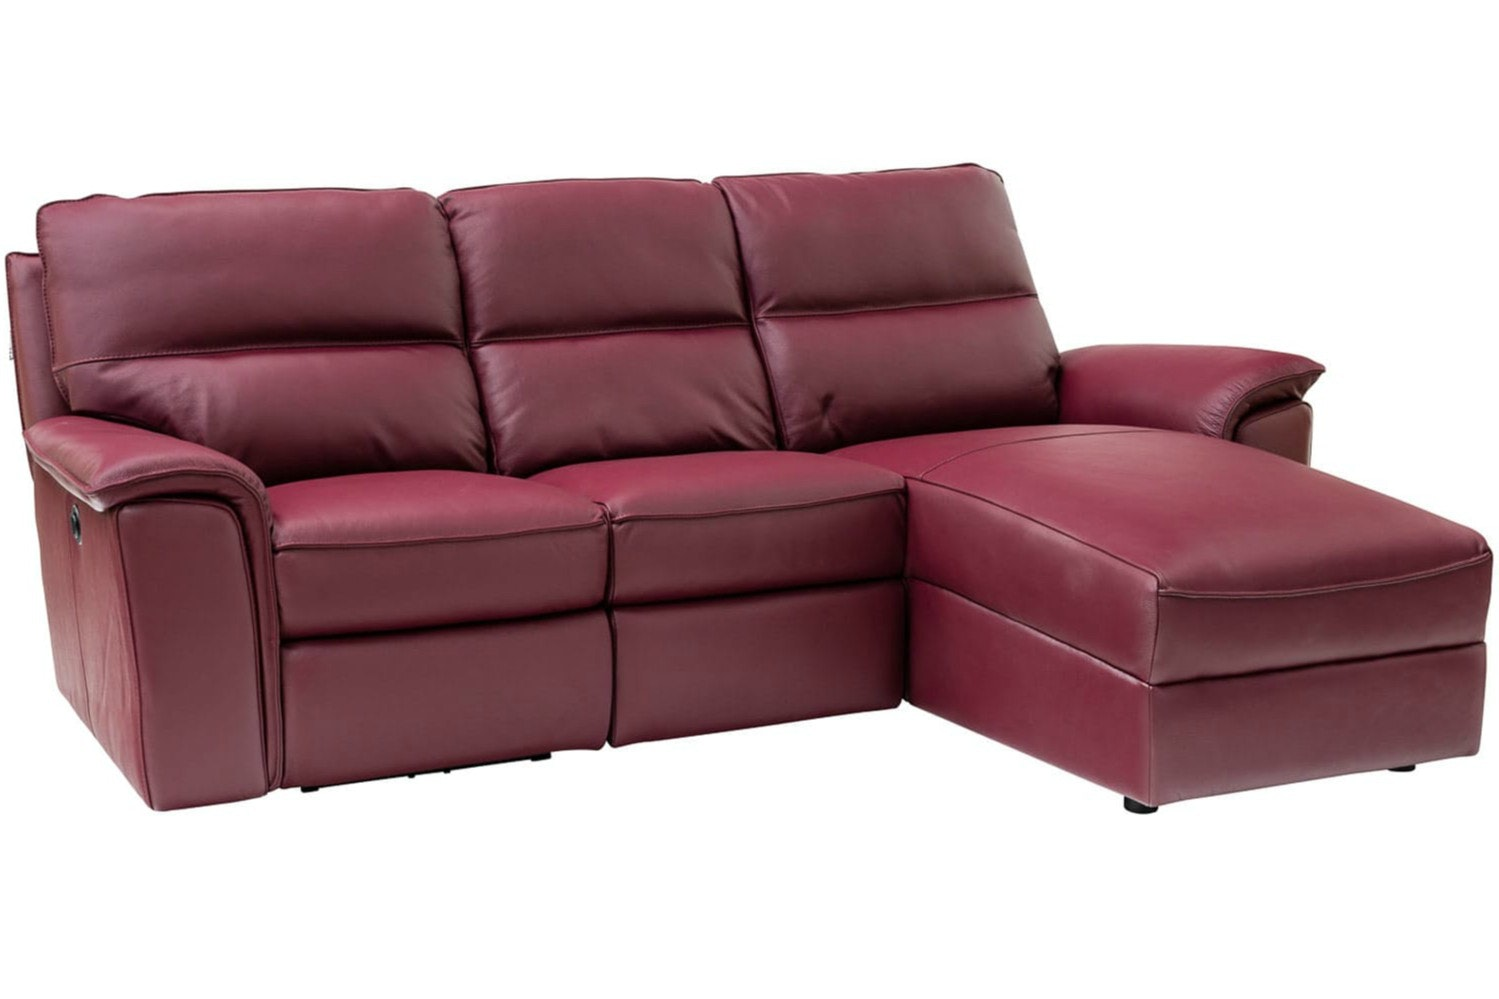 Matero 3 Seater Sofa with Chaise